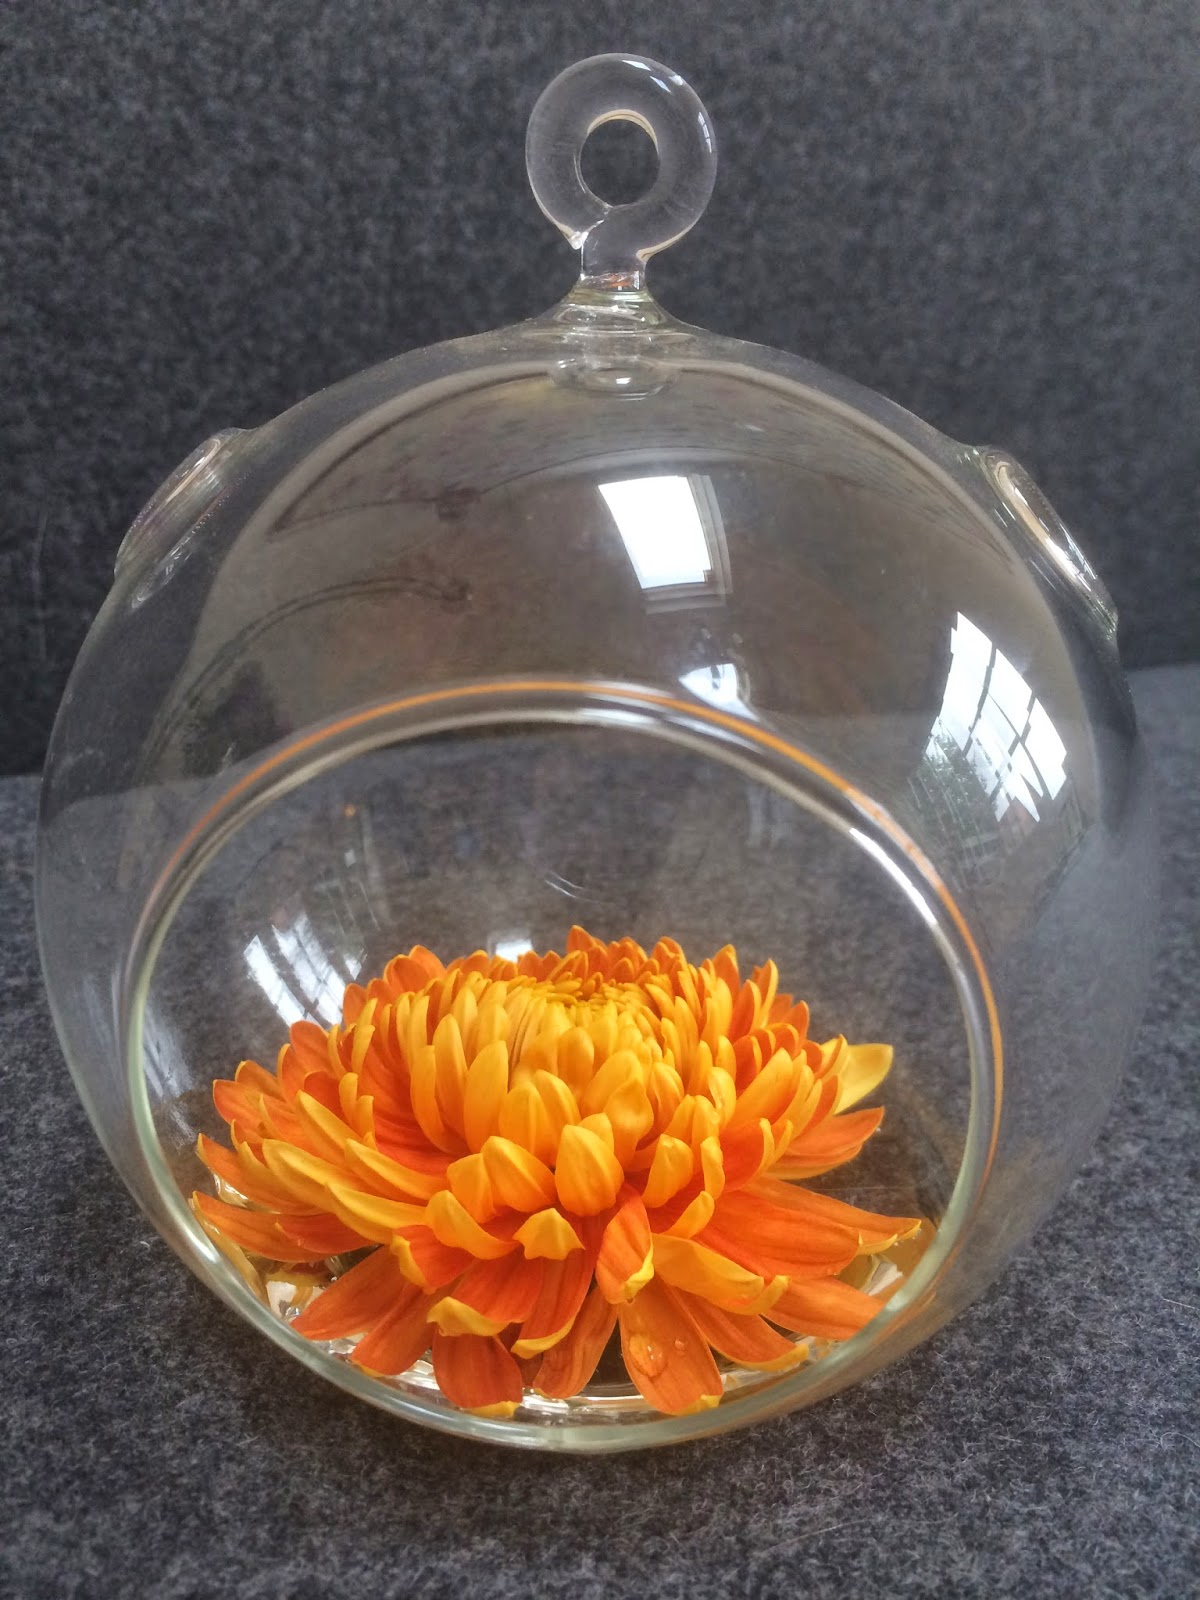 orange chyrsanthemum in a glass globe